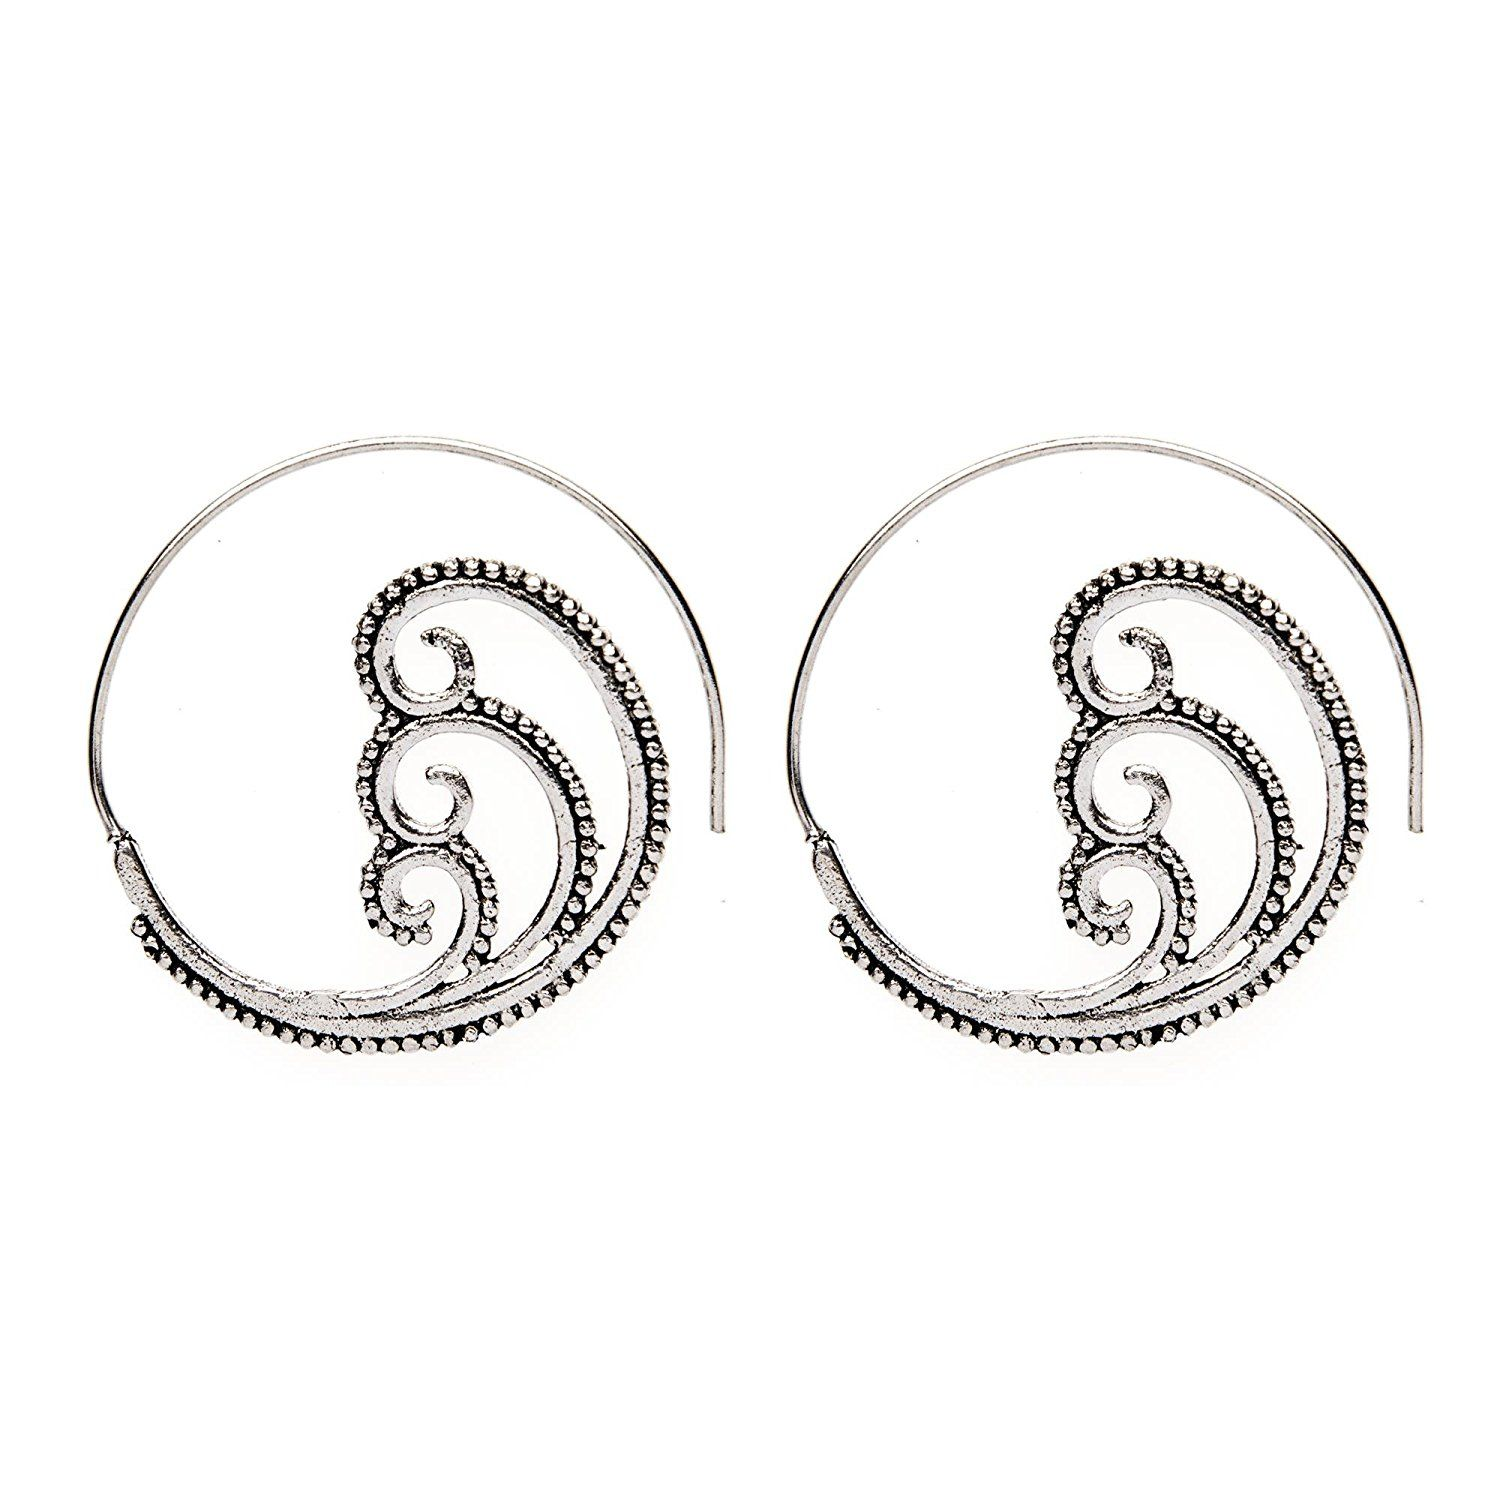 81stgeneration Women's Brass Silver Tone Spiral Swirl Dotwork Tribal Ethnic Earrings >>> To view further for this item, visit the image link. (This is an affiliate link and I receive a commission for the sales)